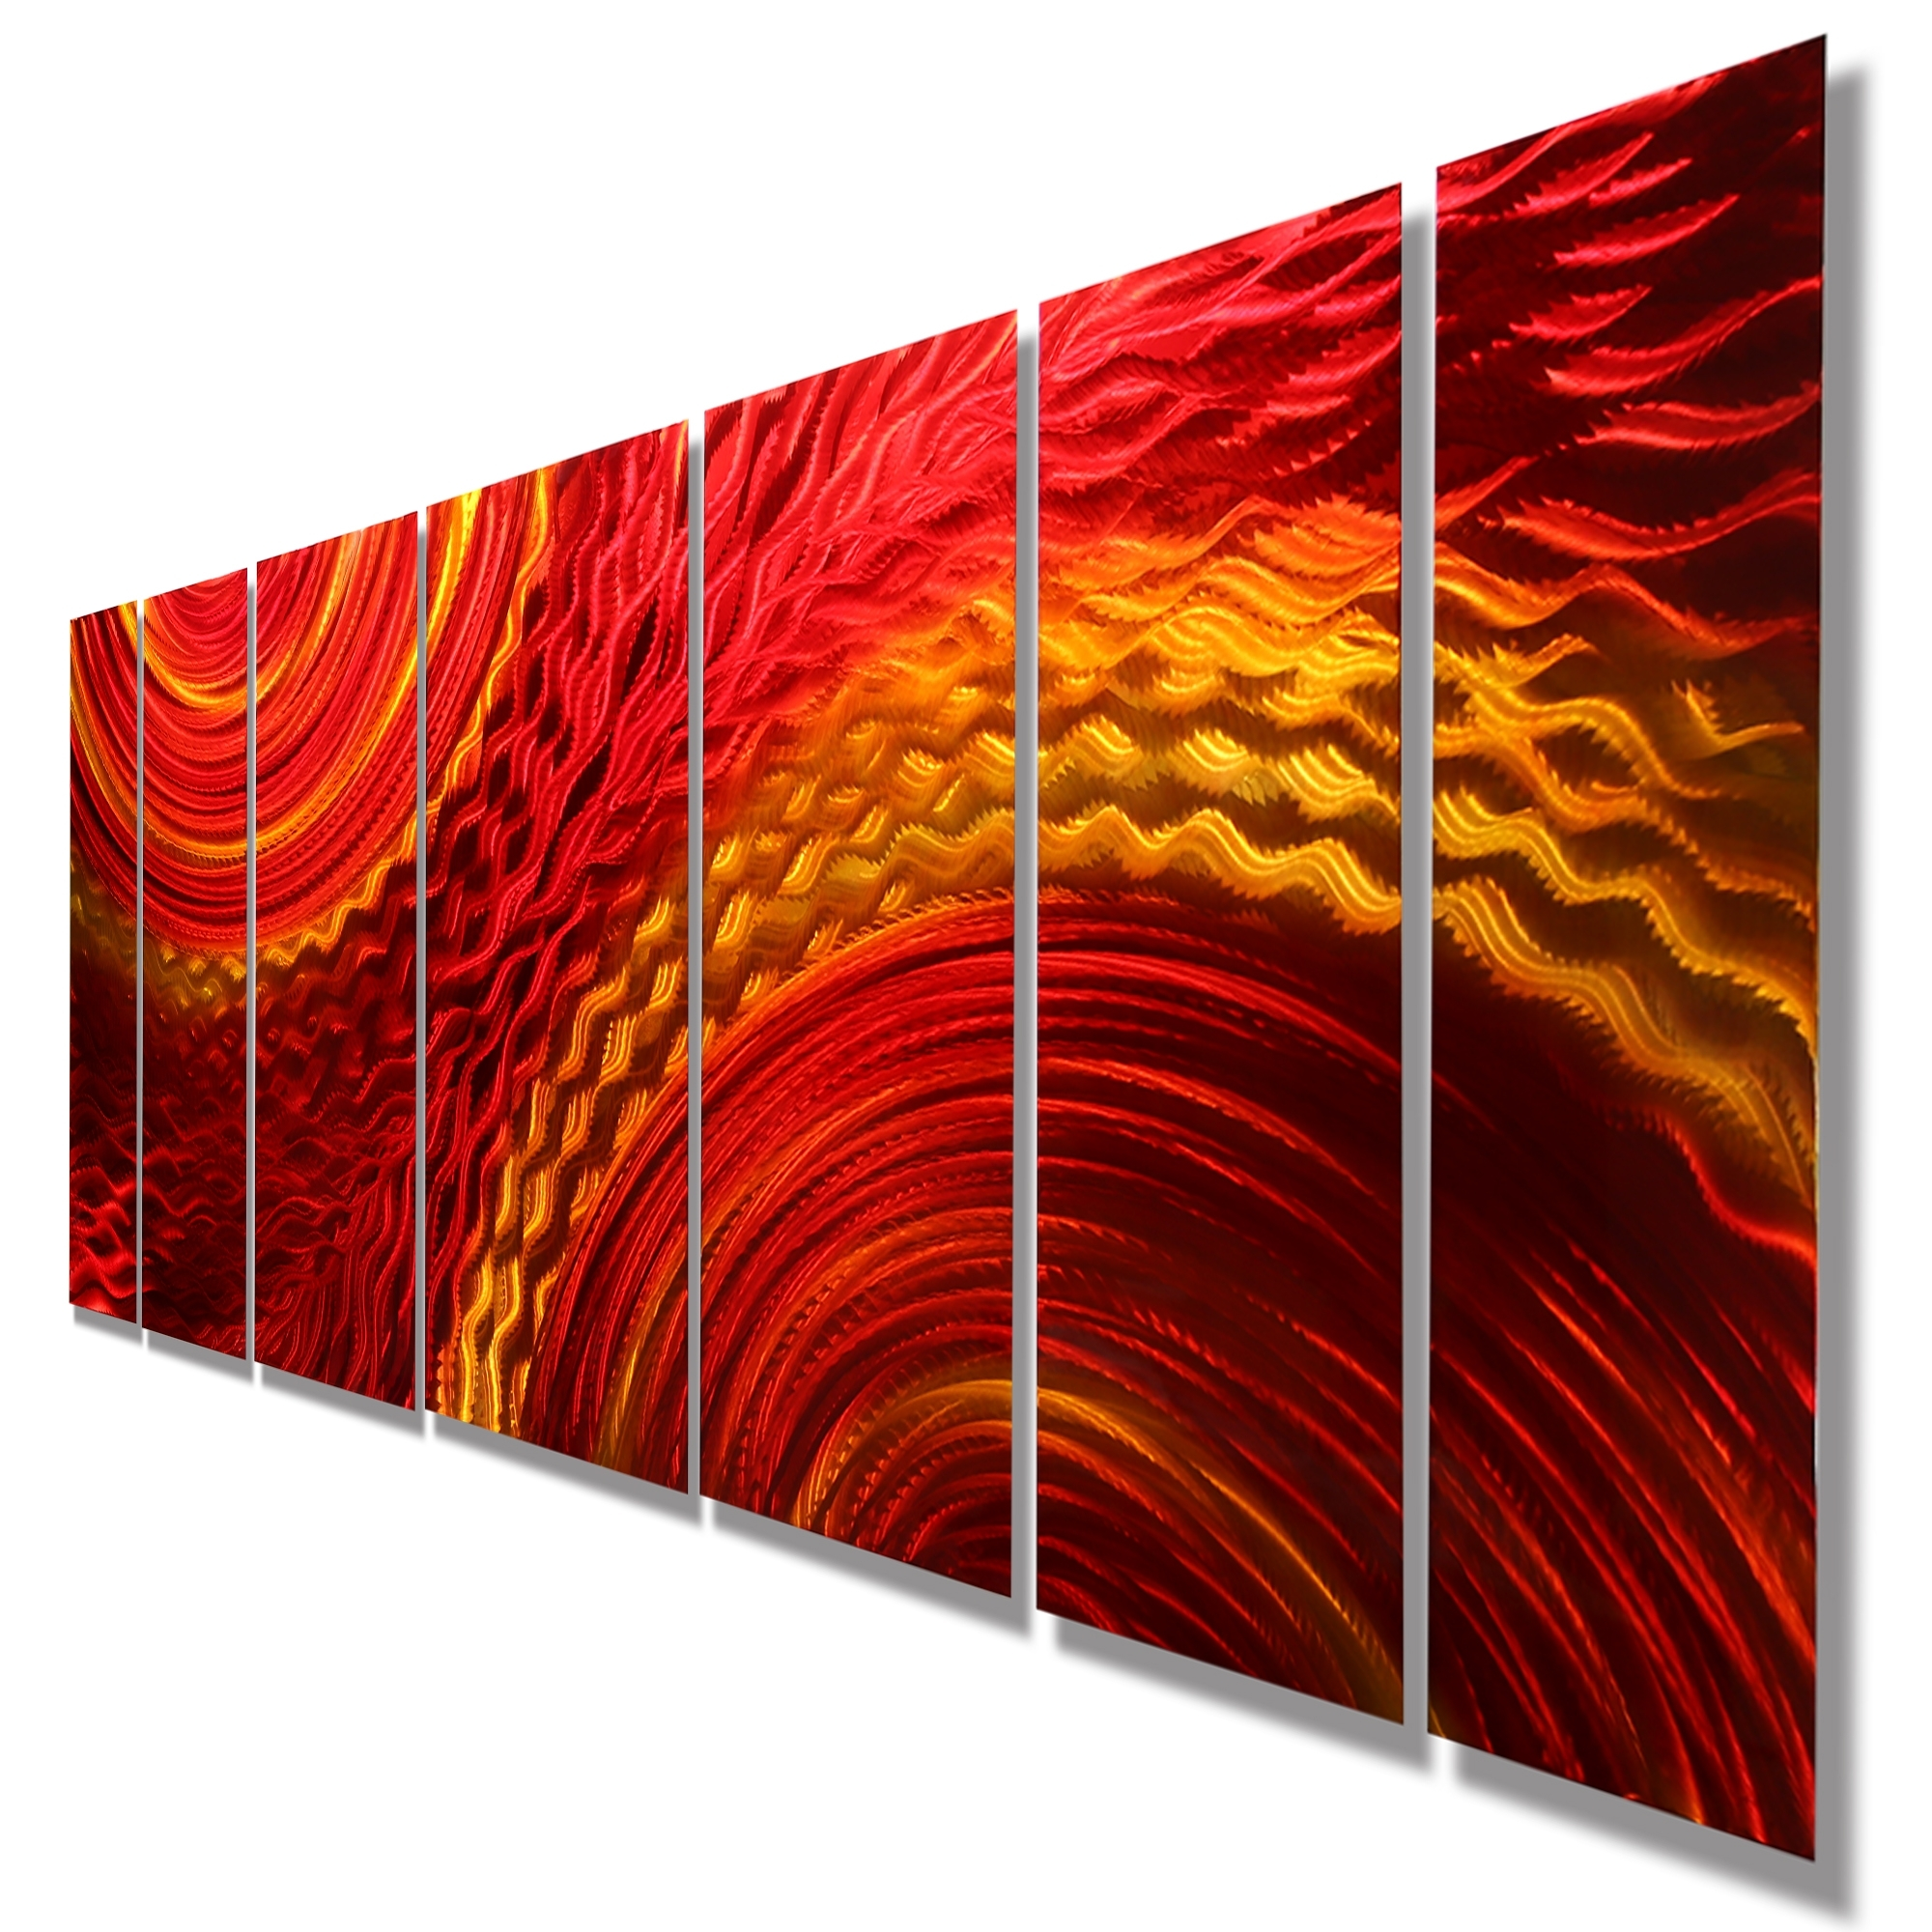 Home Decor: Alluring Abstract Metal Wall Art With Harvest Moods Xl With Regard To Most Recent Large Abstract Wall Art Australia (View 20 of 20)